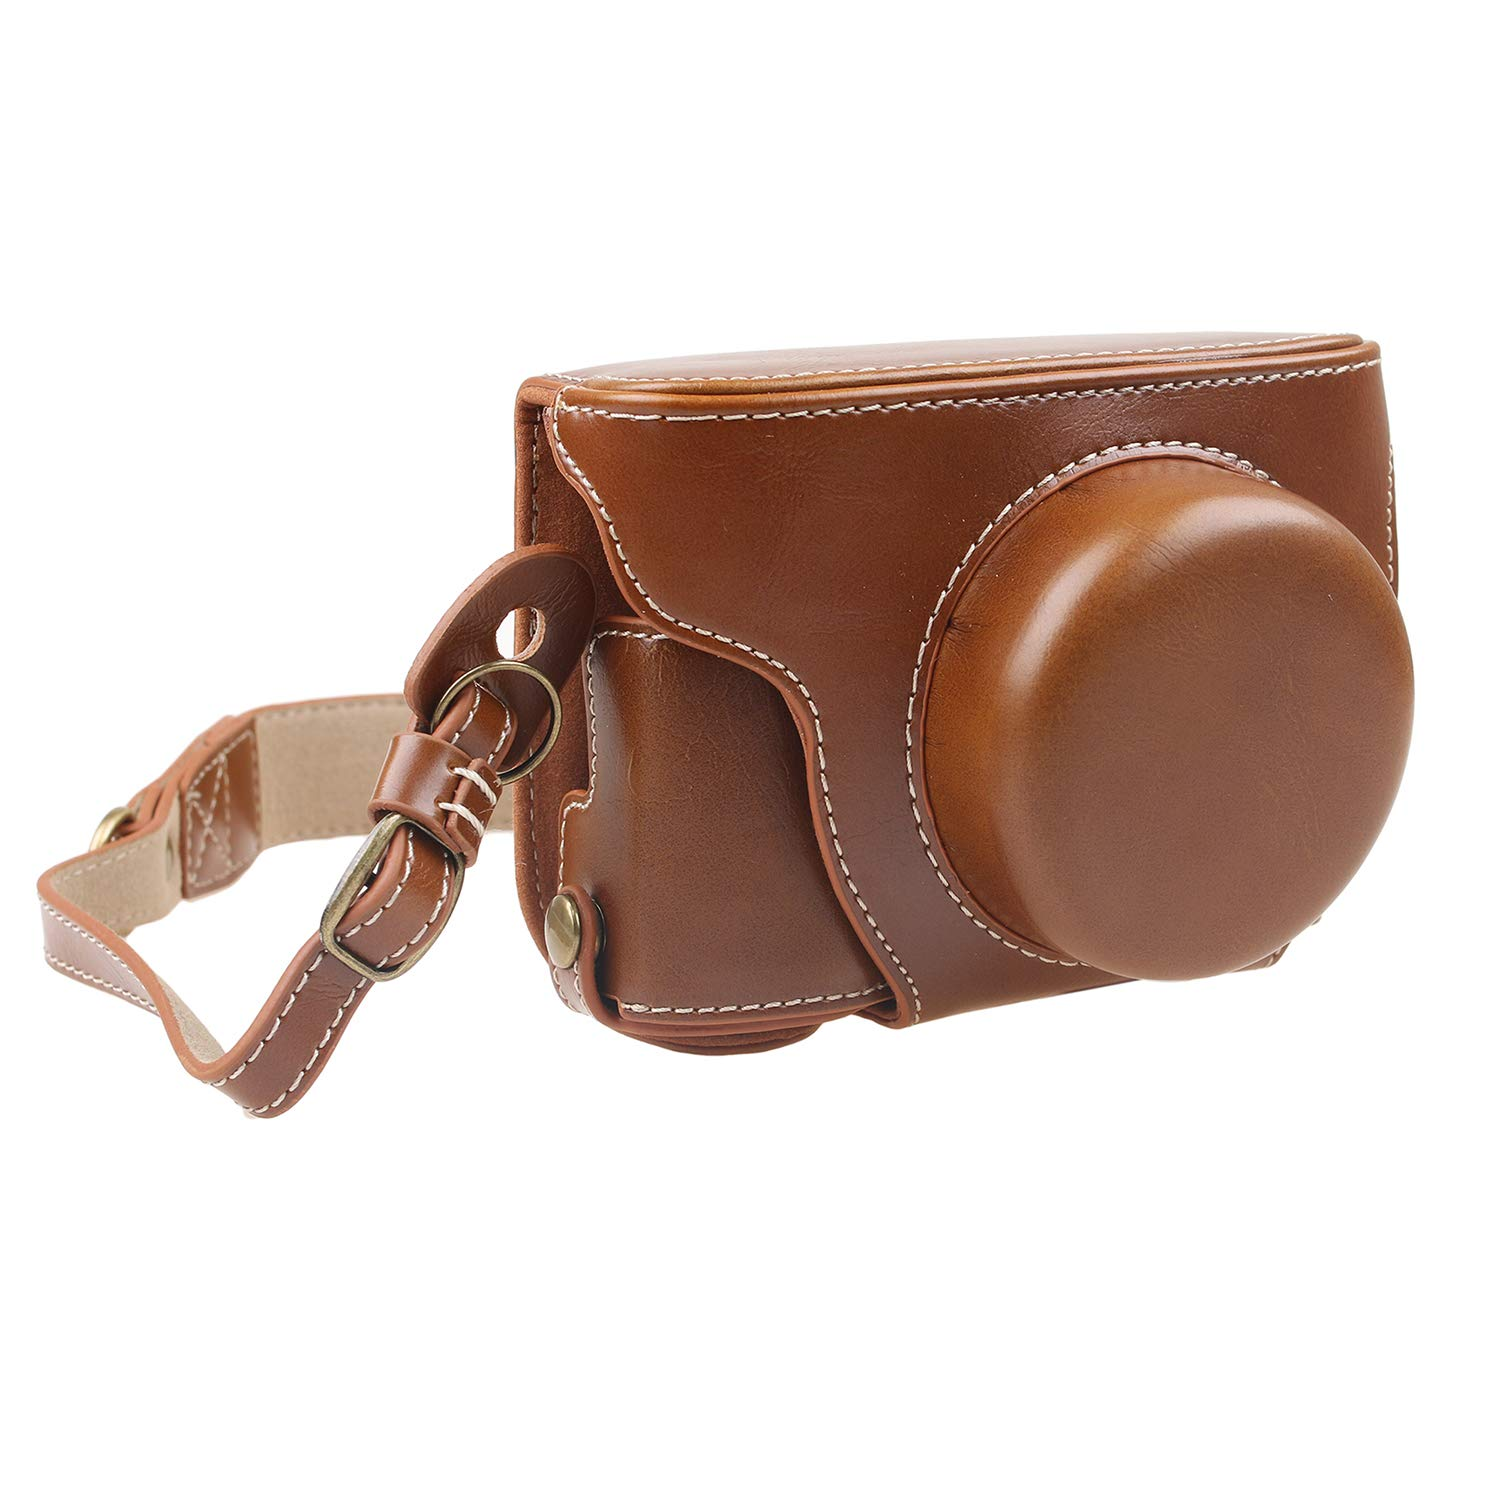 TUYUNG Protective PU Leather Camera Case Bag with Strap, Storage Case for Olympus Pen E-PL8 EPL8 with 14-42mm Digital Camera - Coffee